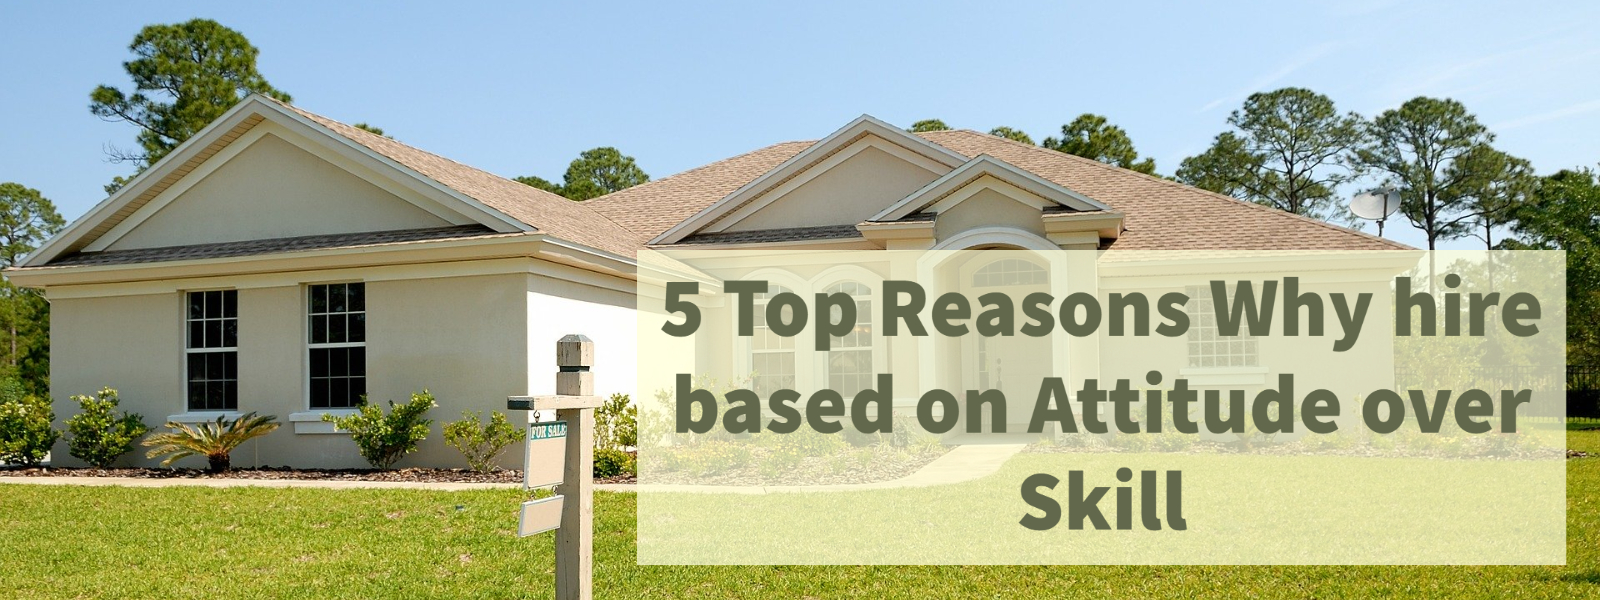 5 Top Reasons Why hire based on Attitude over Skill